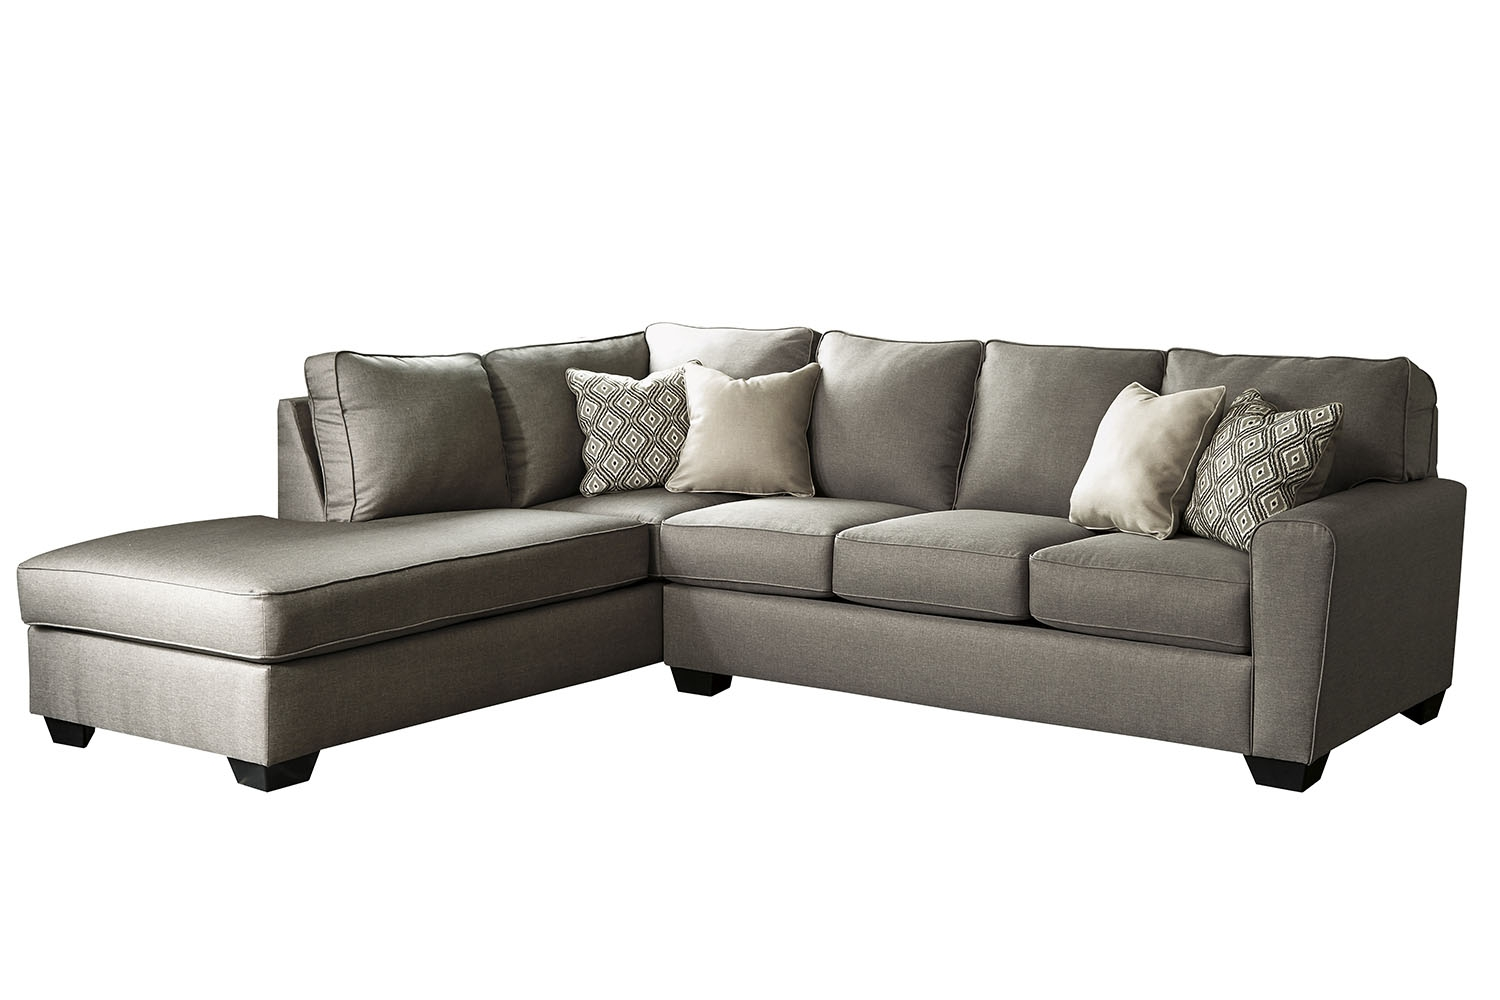 West Coasts Home Furniture Store Mor Furniture For Less